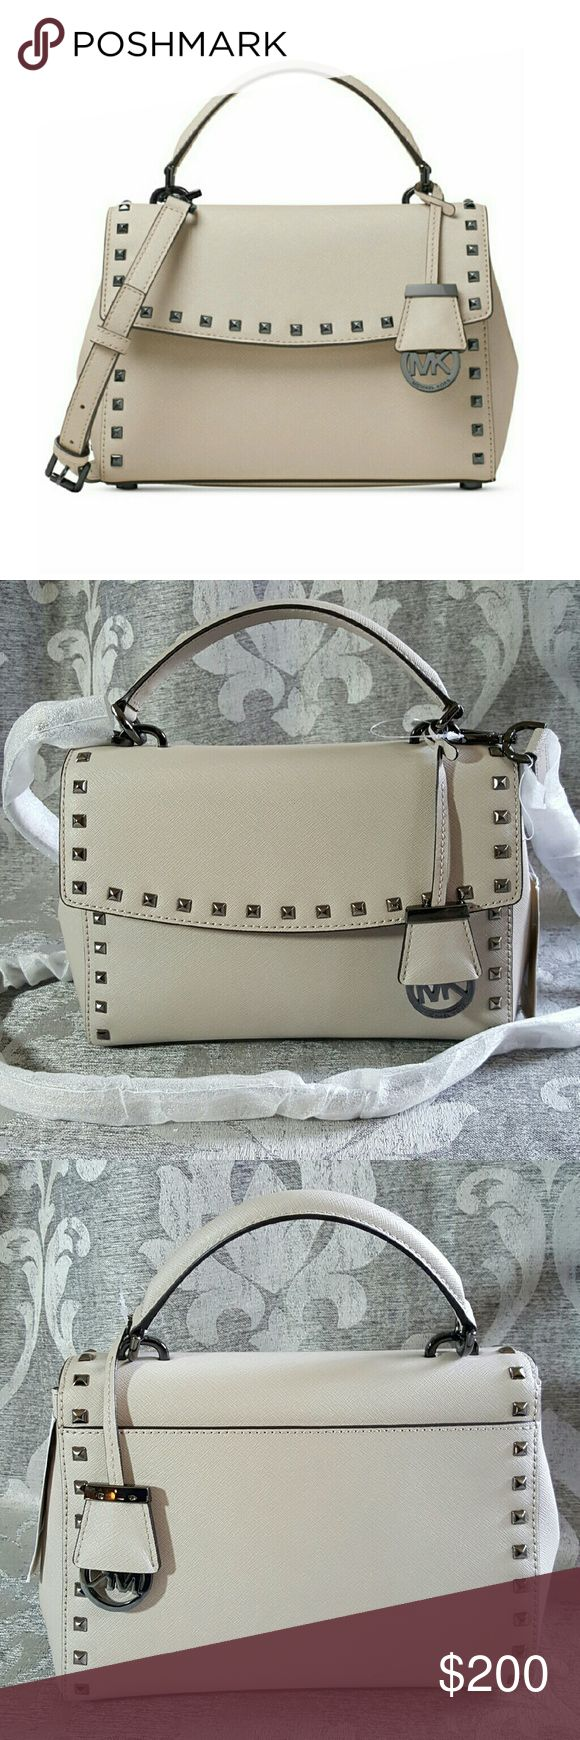 "Michael Kors Ava Small Satchel NEW Michael Kors Ava Small Top Handle Satchel in Cement!	Petite pyramid studs add an edgy element this compact top handle satchel. Has a strap to make it a crossbody! PRICE FIRM. LESS ON Ⓜerc  Saffiano leather; lining: polyester Small sized bag; 12""W x 7""H x 3-3/4""D Interior features lining, 1 zip pocket and 1 open pocket 4""L top handle; 21"" to 24""L adjustable strap Magnetic snap closure Exterior features shiny rhodium-tone hardware, studded detail and 1 back…"